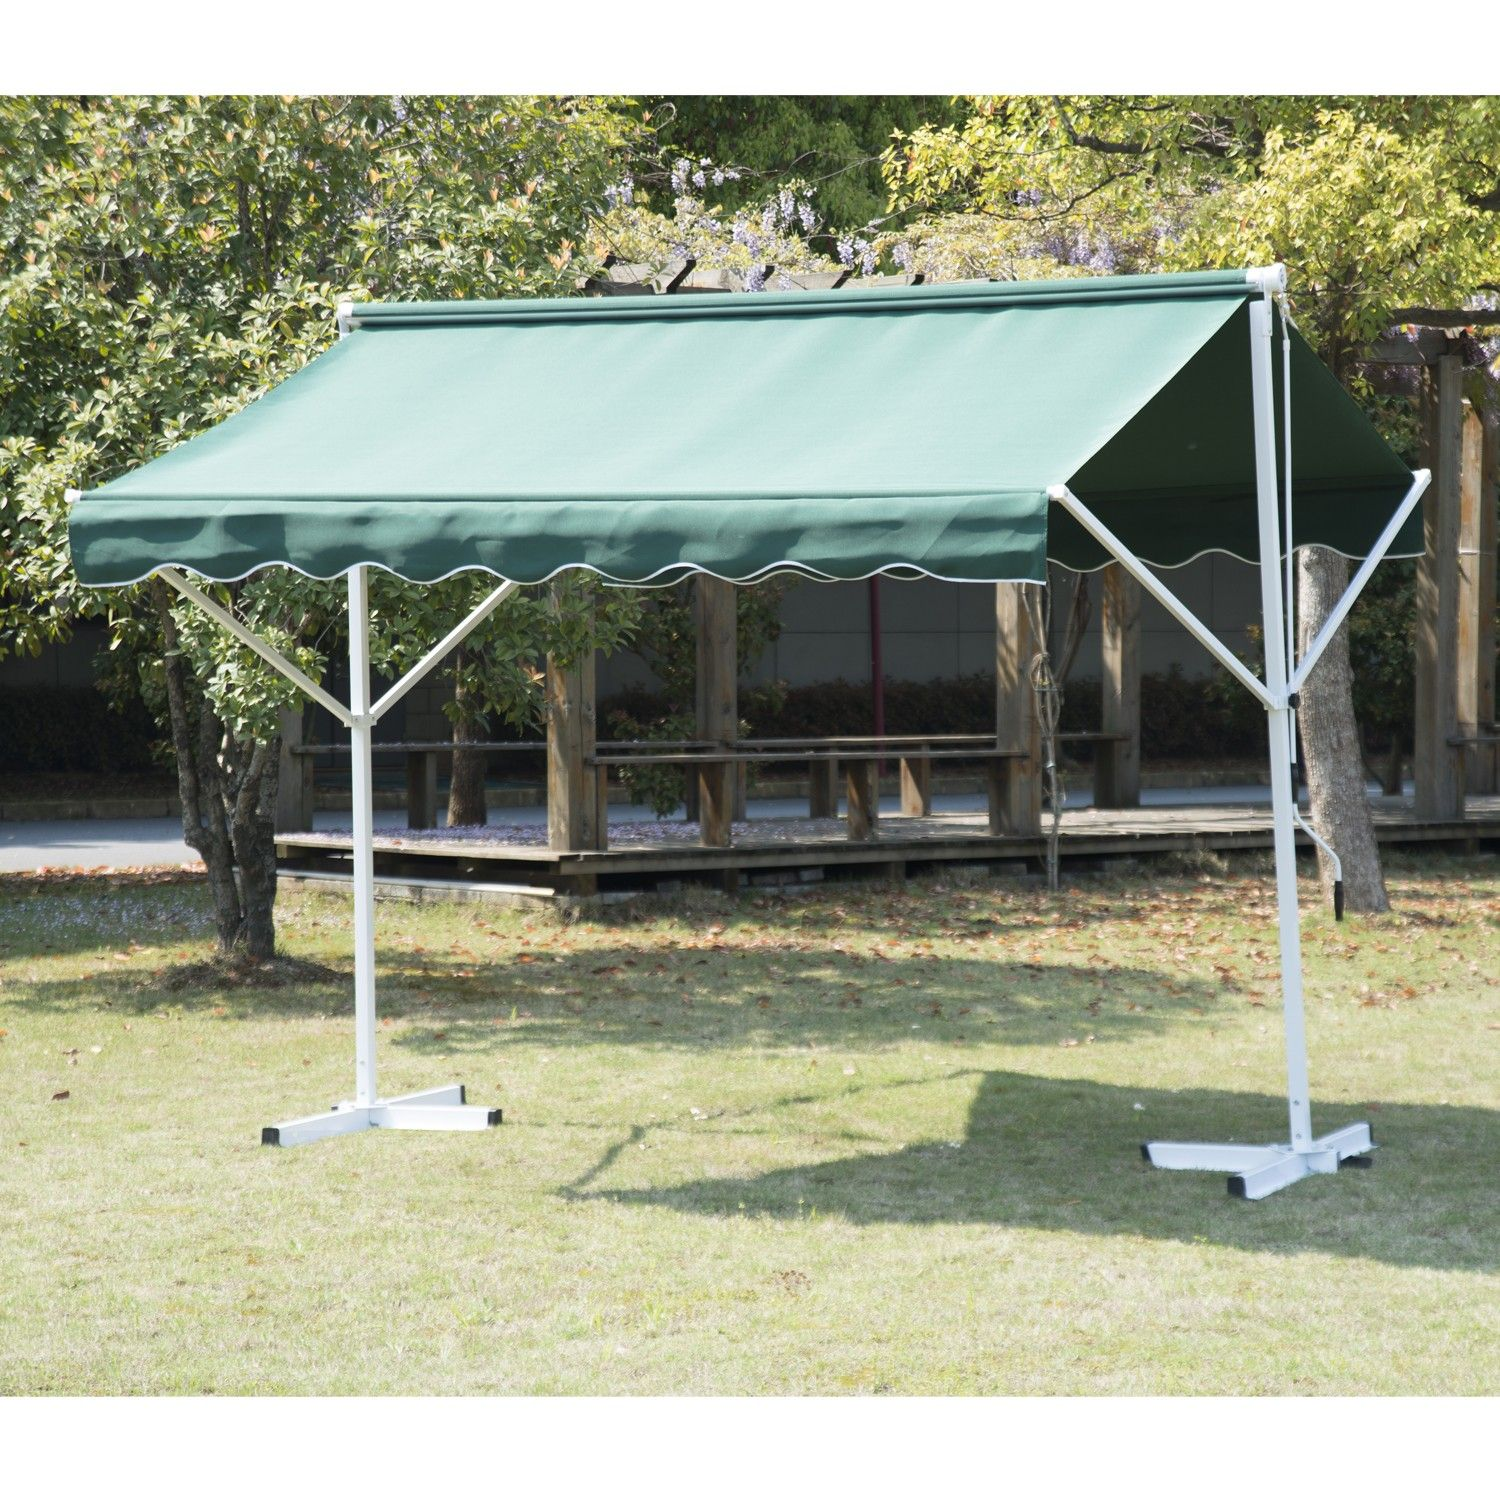 waterproof front sun manual patio cover shelter shade retractable canopy rain outdoor living back awning door outsunny